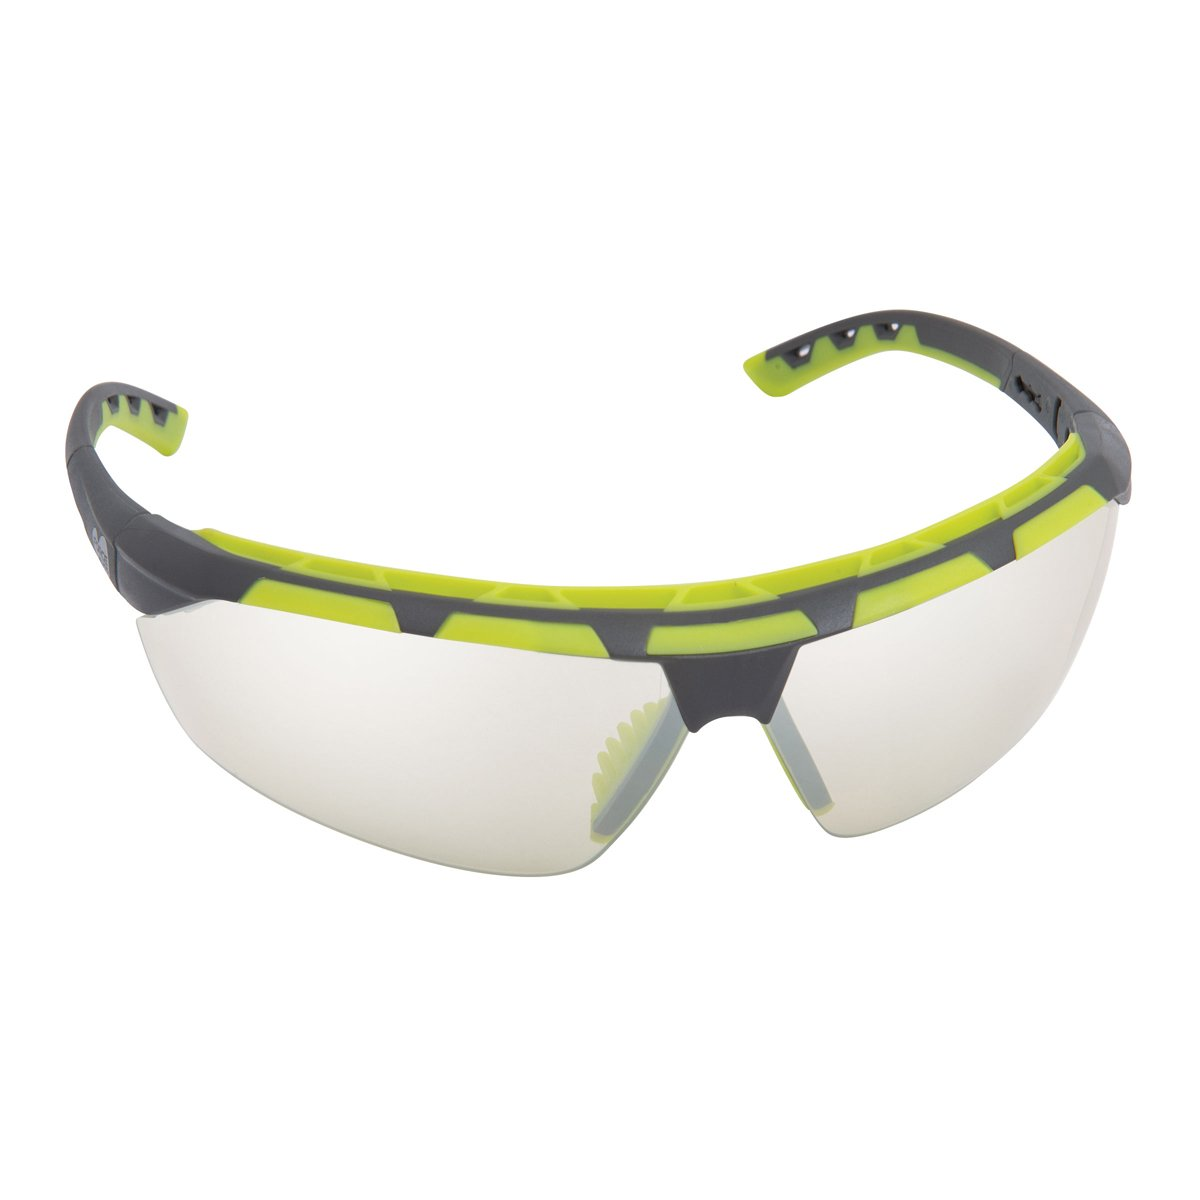 Force360 Calibr8 Clear Mirror Lens Safety Spectacle